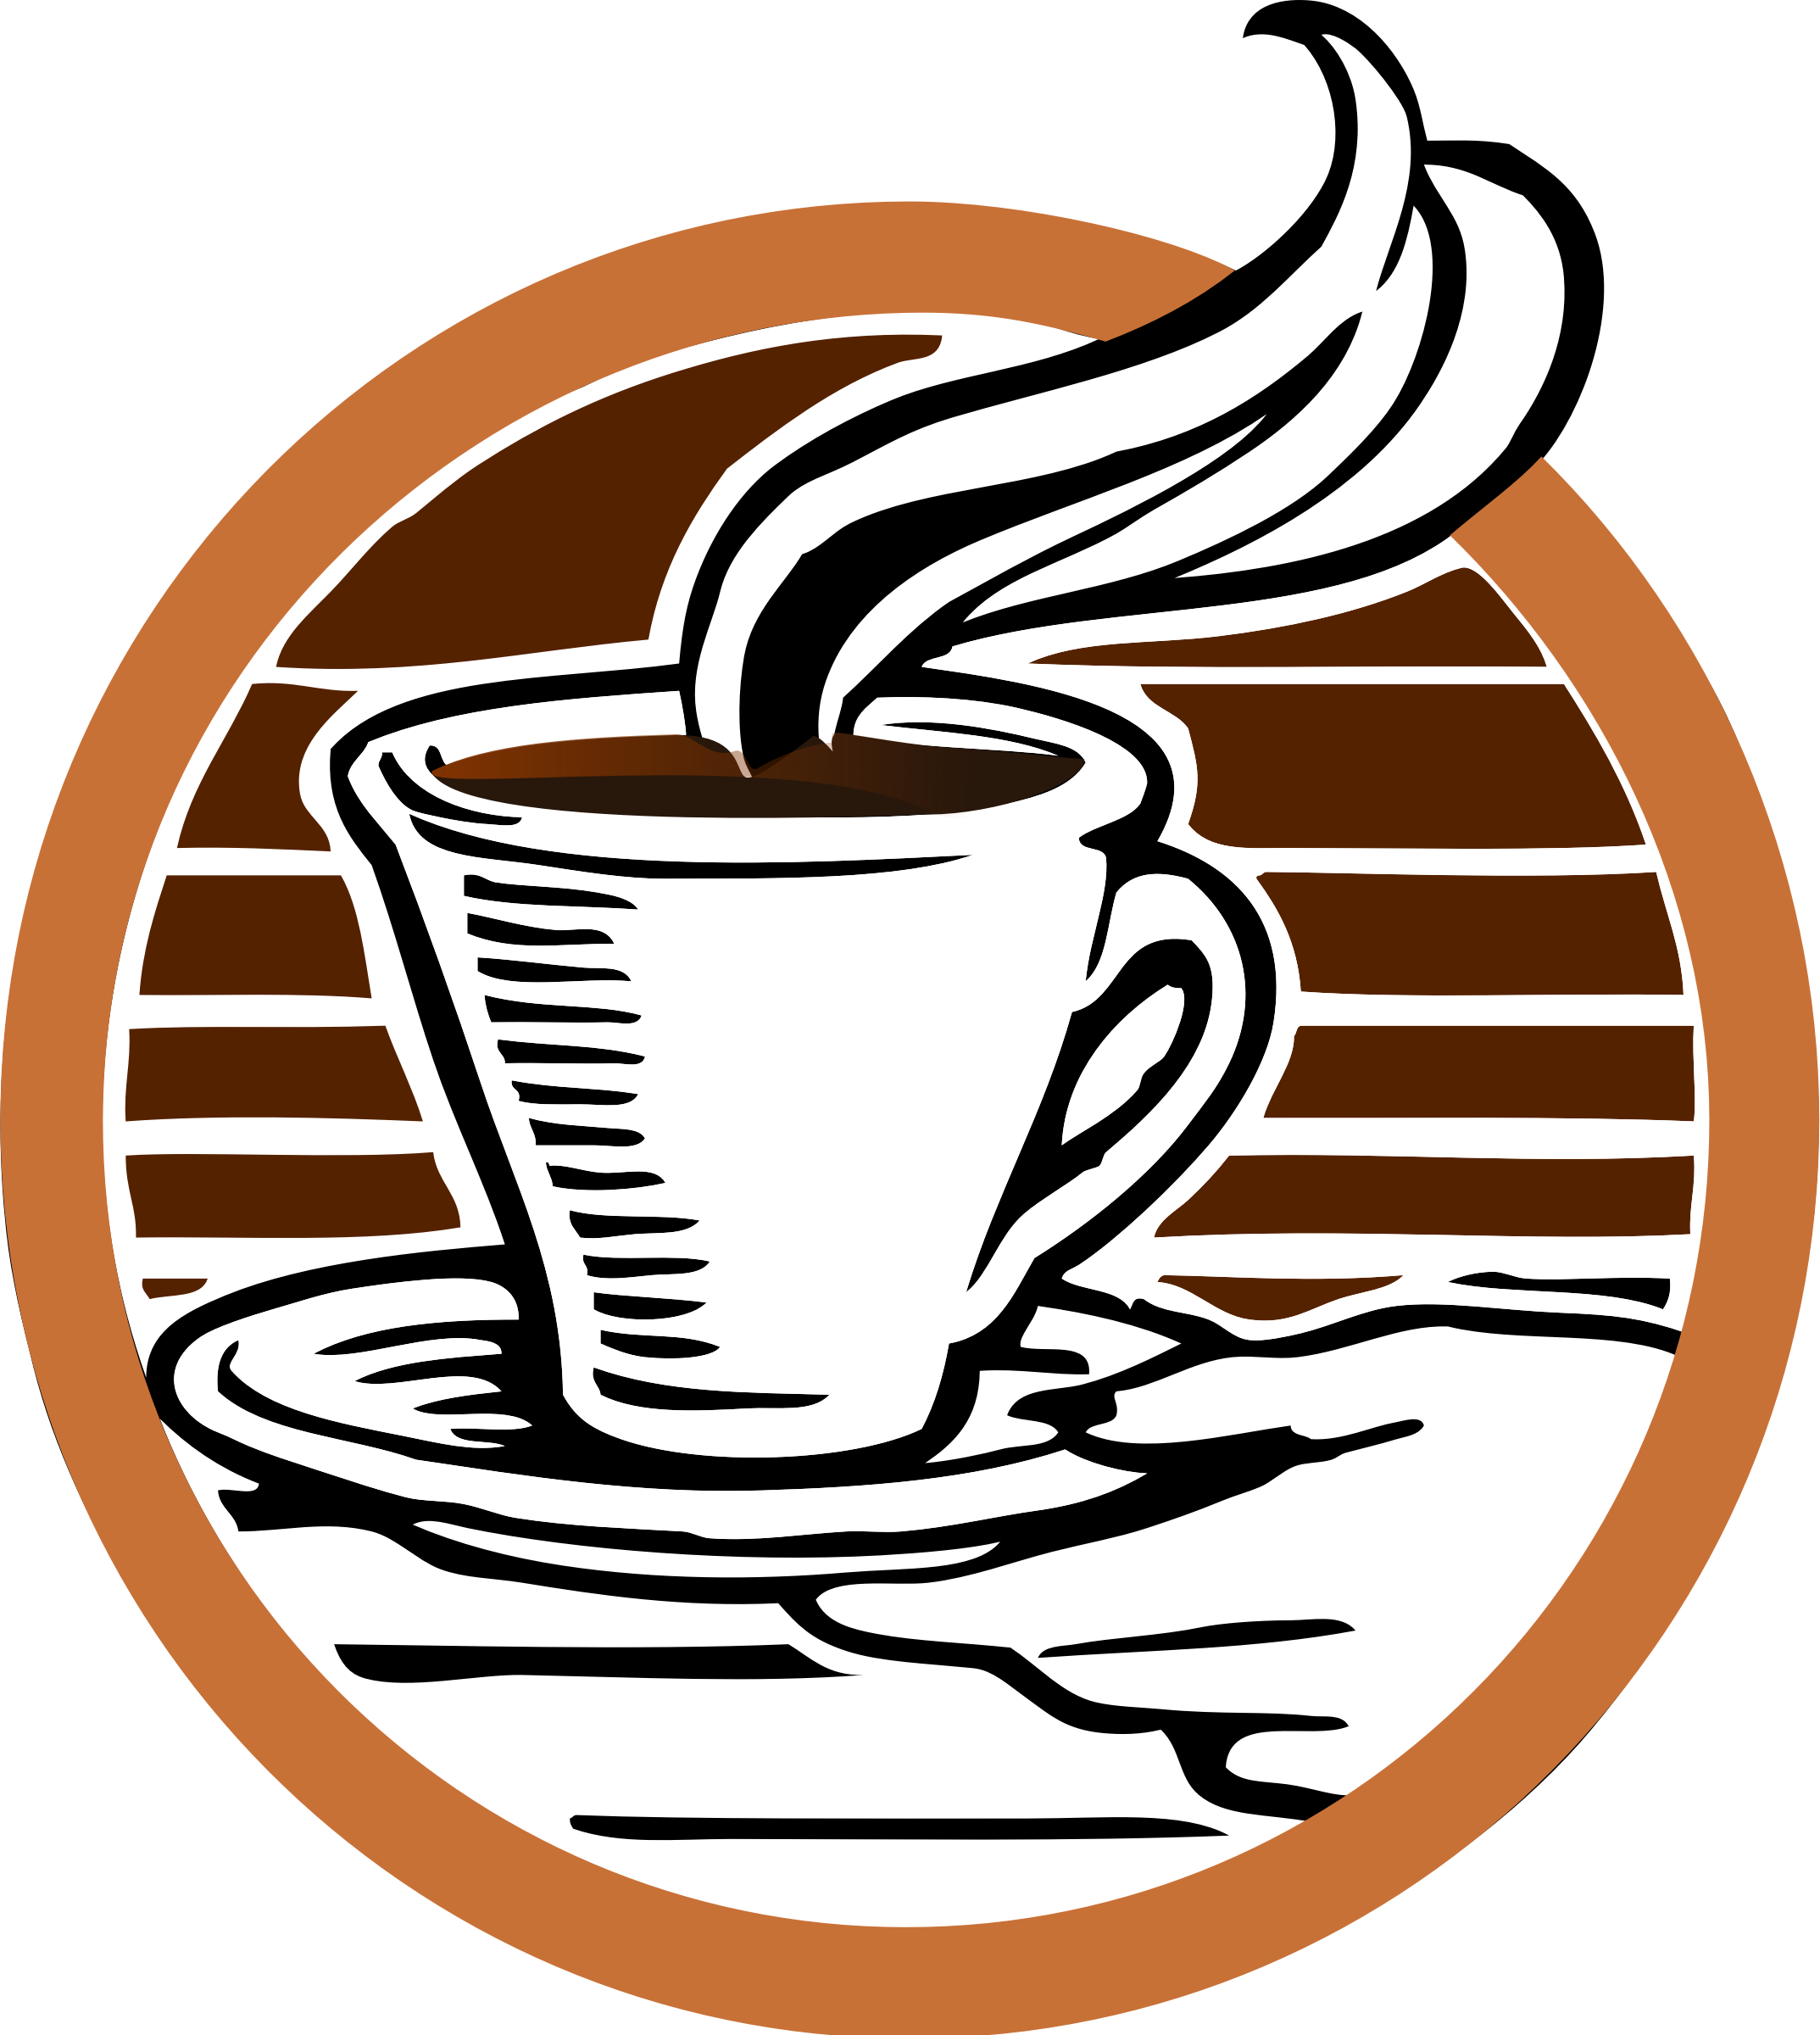 Coffee logo png. Transparent background mart